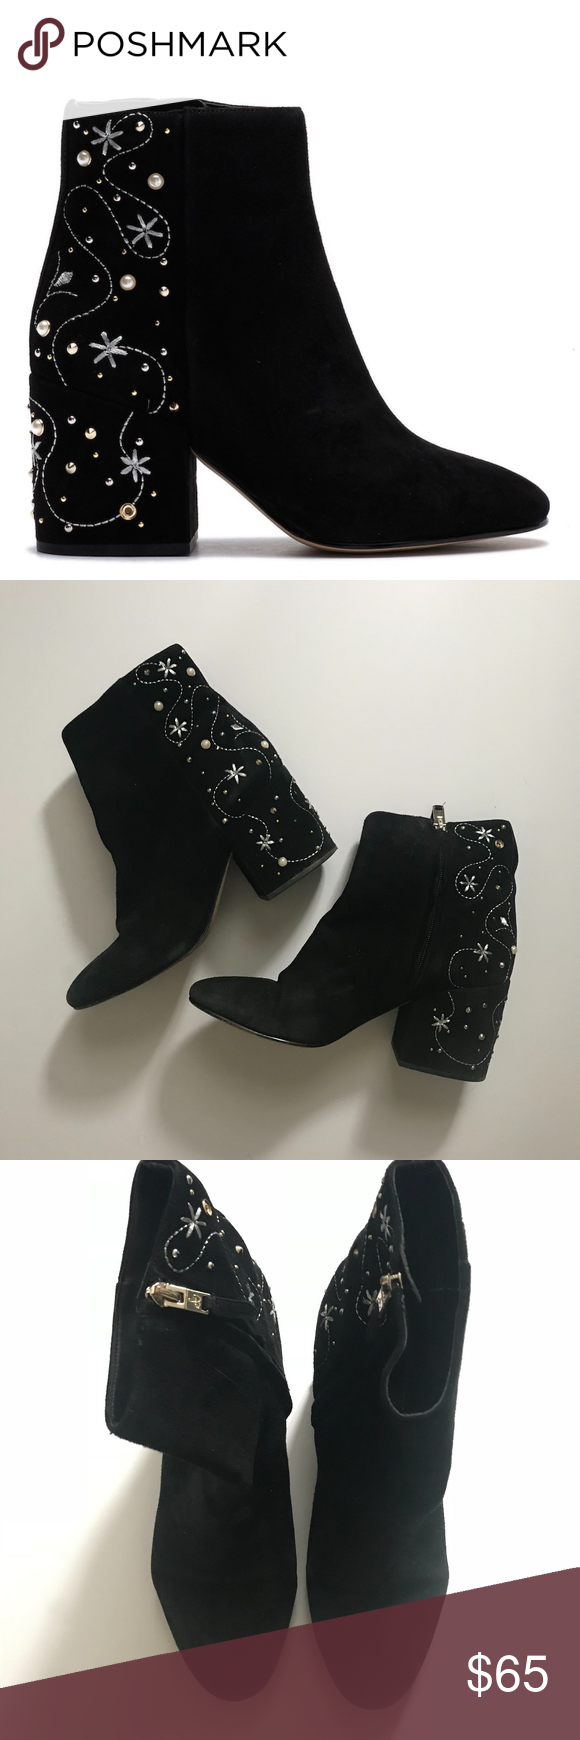 af1d5fdbdc7ccc Sam Edelman Taft Embroidered Stud Black Boot Faux pearls stud the  embroidered back panel of a